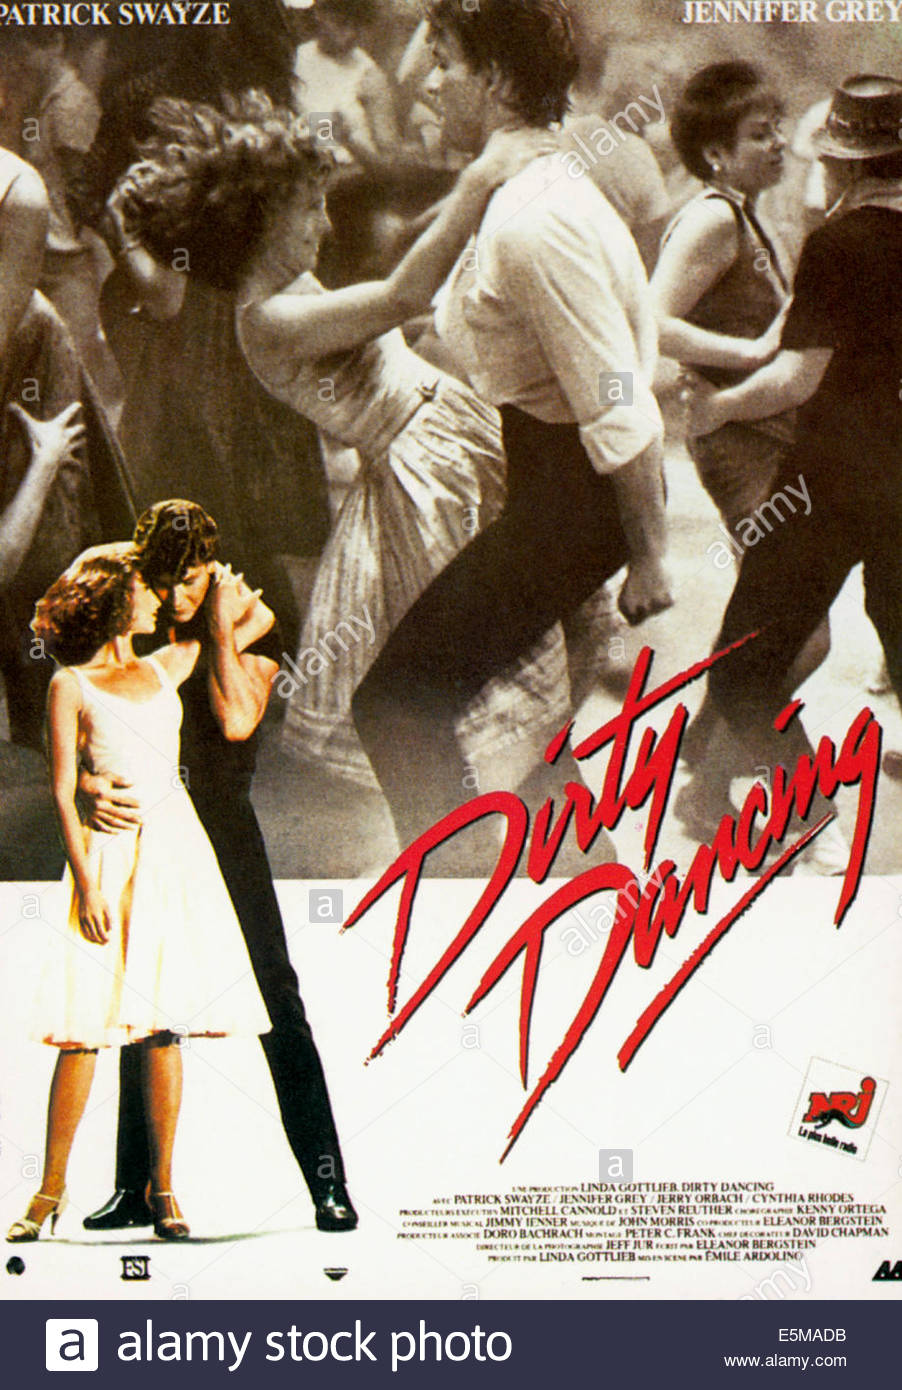 Dirty Dancing Jennifer Grey Patrick Swayze 1987 C Artisan Stock Photo Alamy